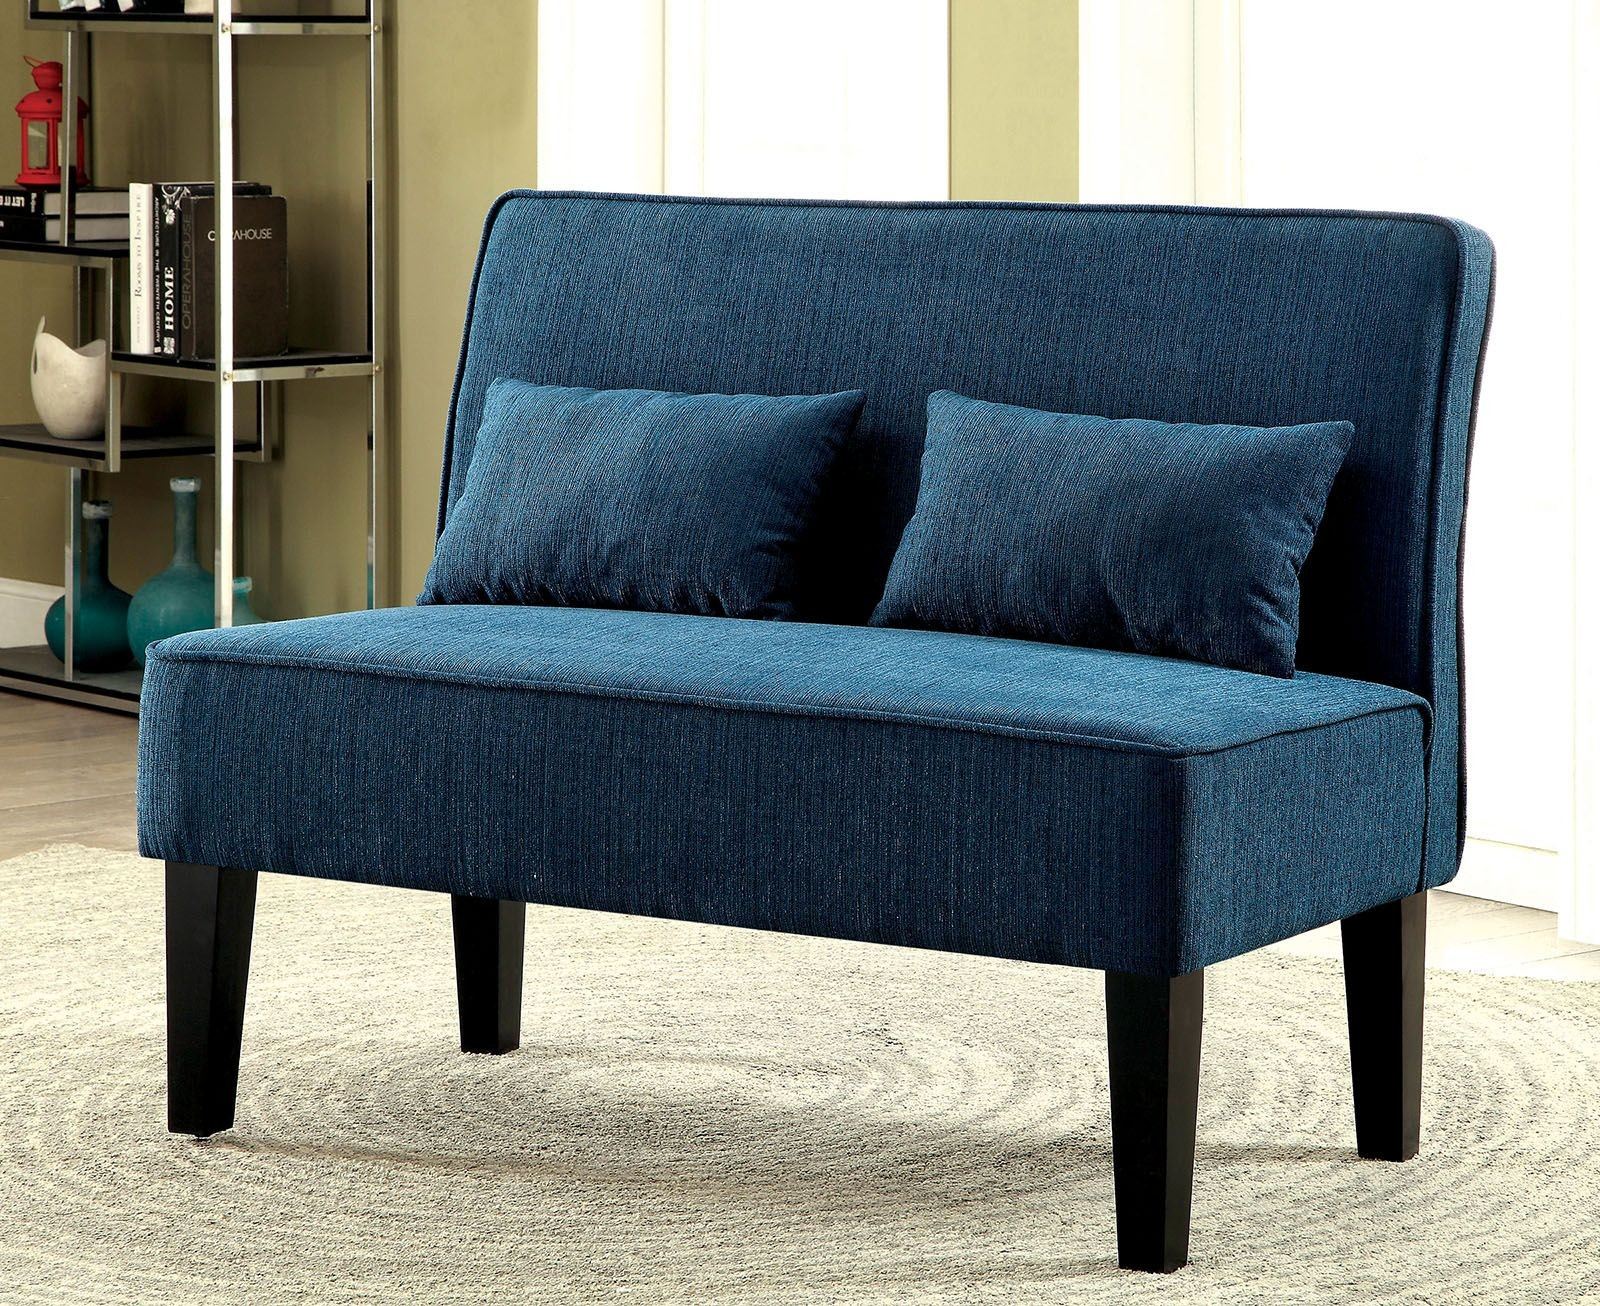 Lexi Teal Loveseat Bench From Furniture Of America Coleman Furniture